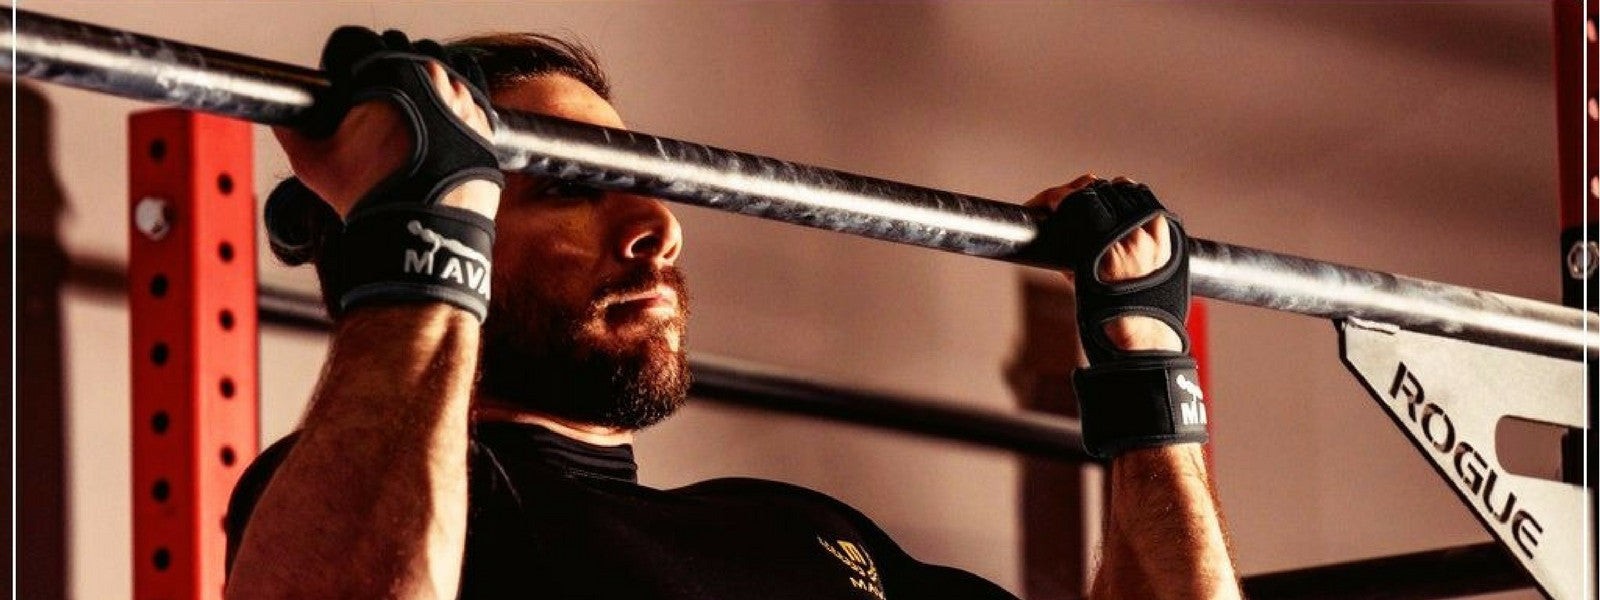 PUMP UP YOUR GRIP AND ENHANCE YOUR WEIGHT TRAINING SESSIONS